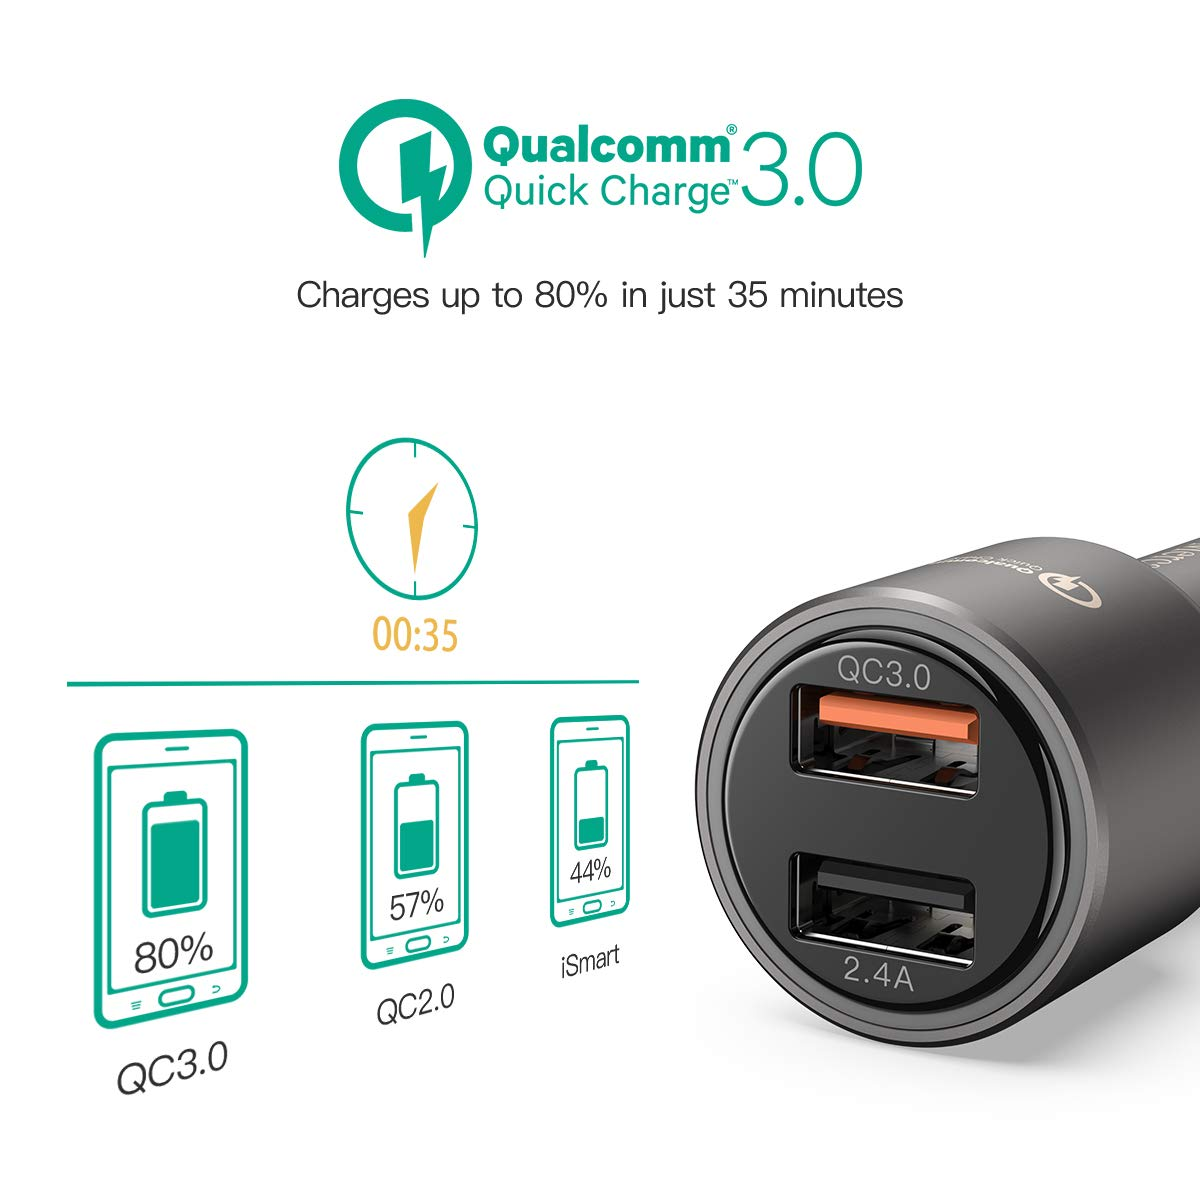 Mercase Car Charger Quick Charge 30 And 24a Port High Speed Large Ampamp 2 Usb Smart Charging Built In Safety Protection Input 12 24v Phone Fast Adapter For